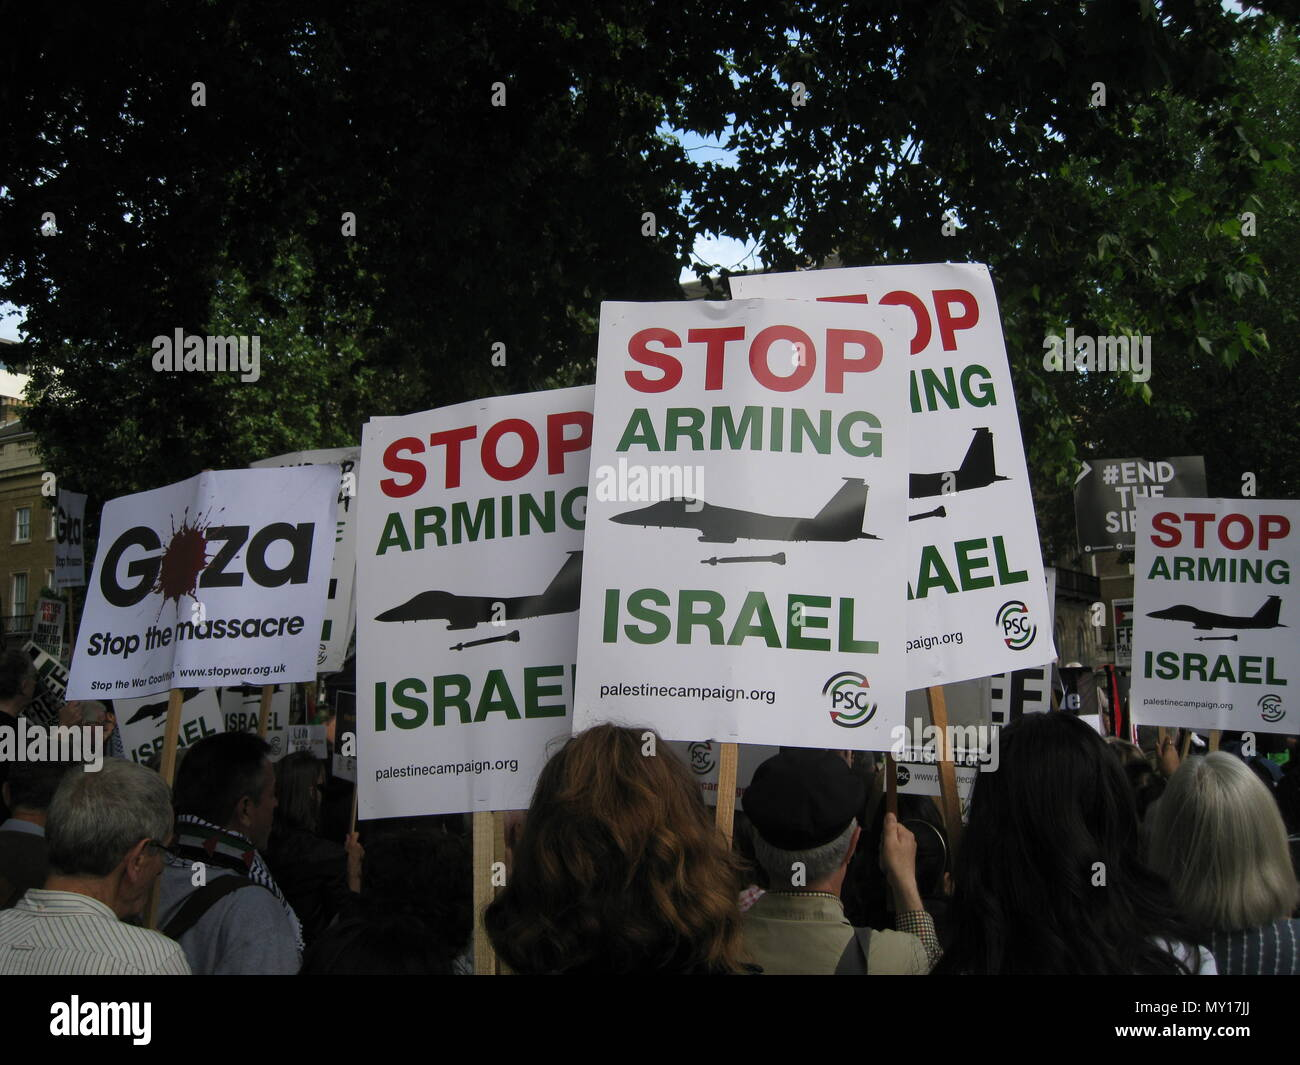 London UK - 05 June, 2018: People in the street at Free Palestine – Stop the Killing – Stop Arming Israel Event as editorial Credit: Stefania Arca/Alamy Live News - Stock Image